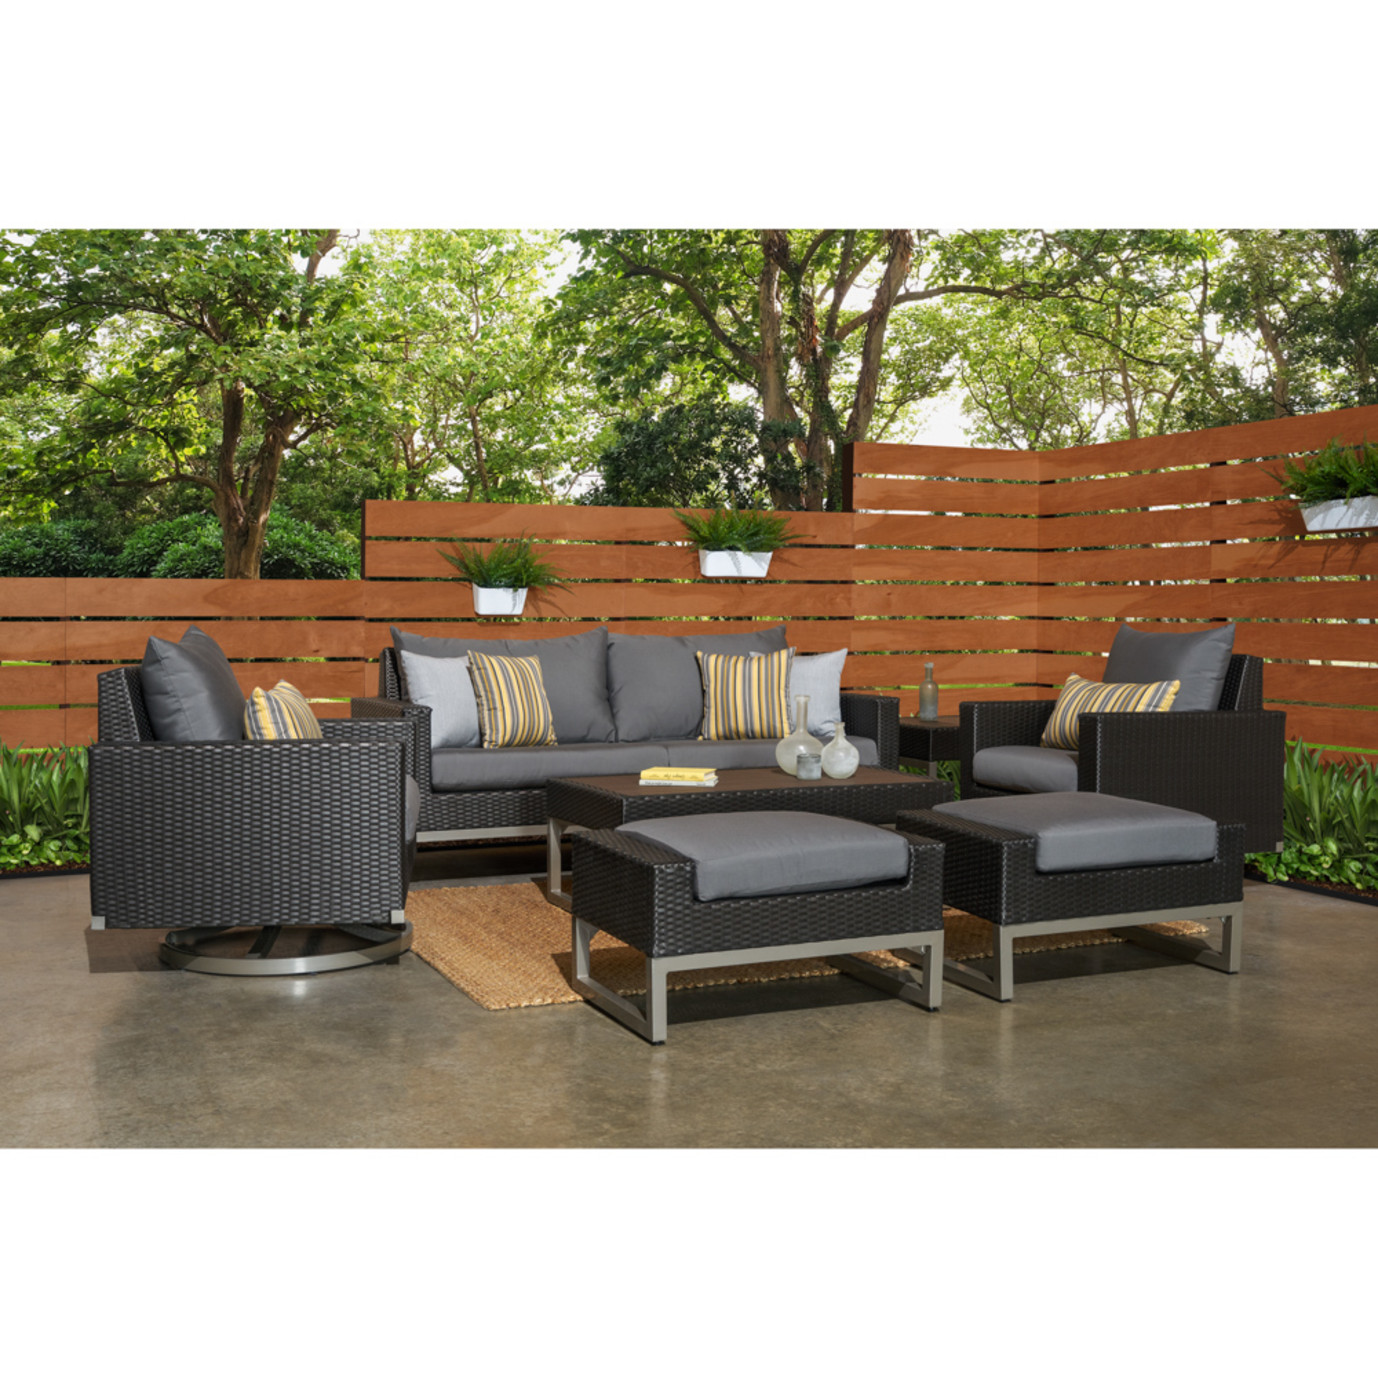 Milo™ Espresso 7 Piece Motion Deep Seating Set - Charcoal Gray